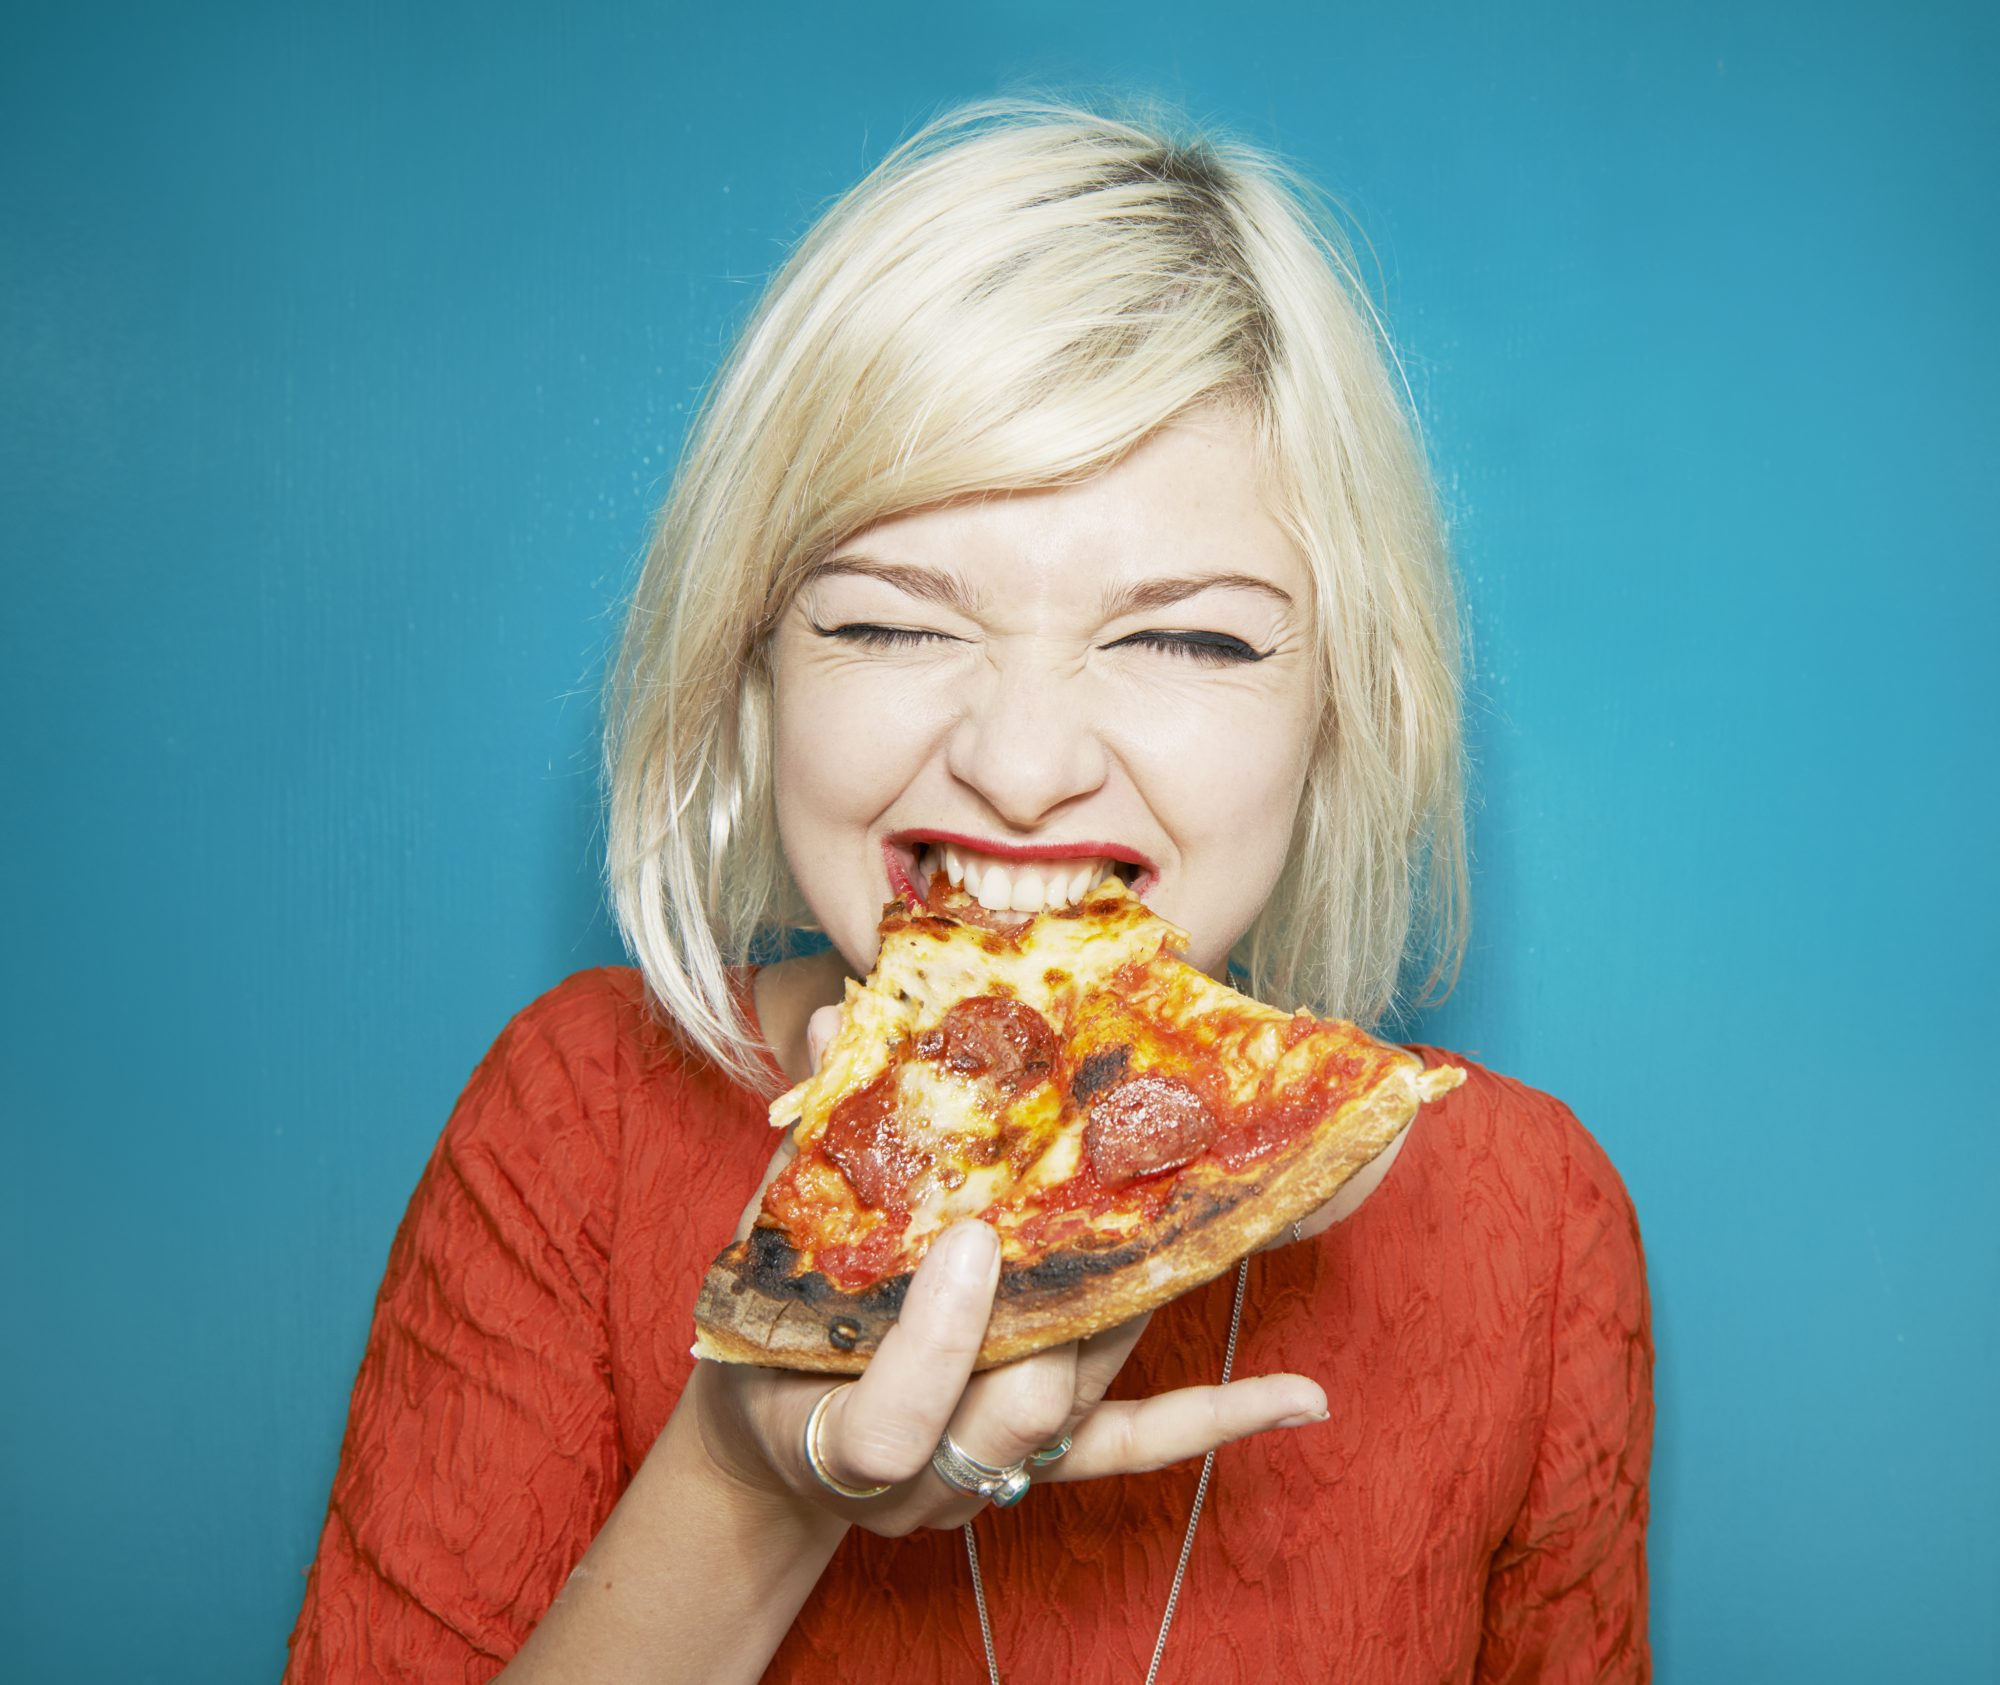 woman eating pizza slice